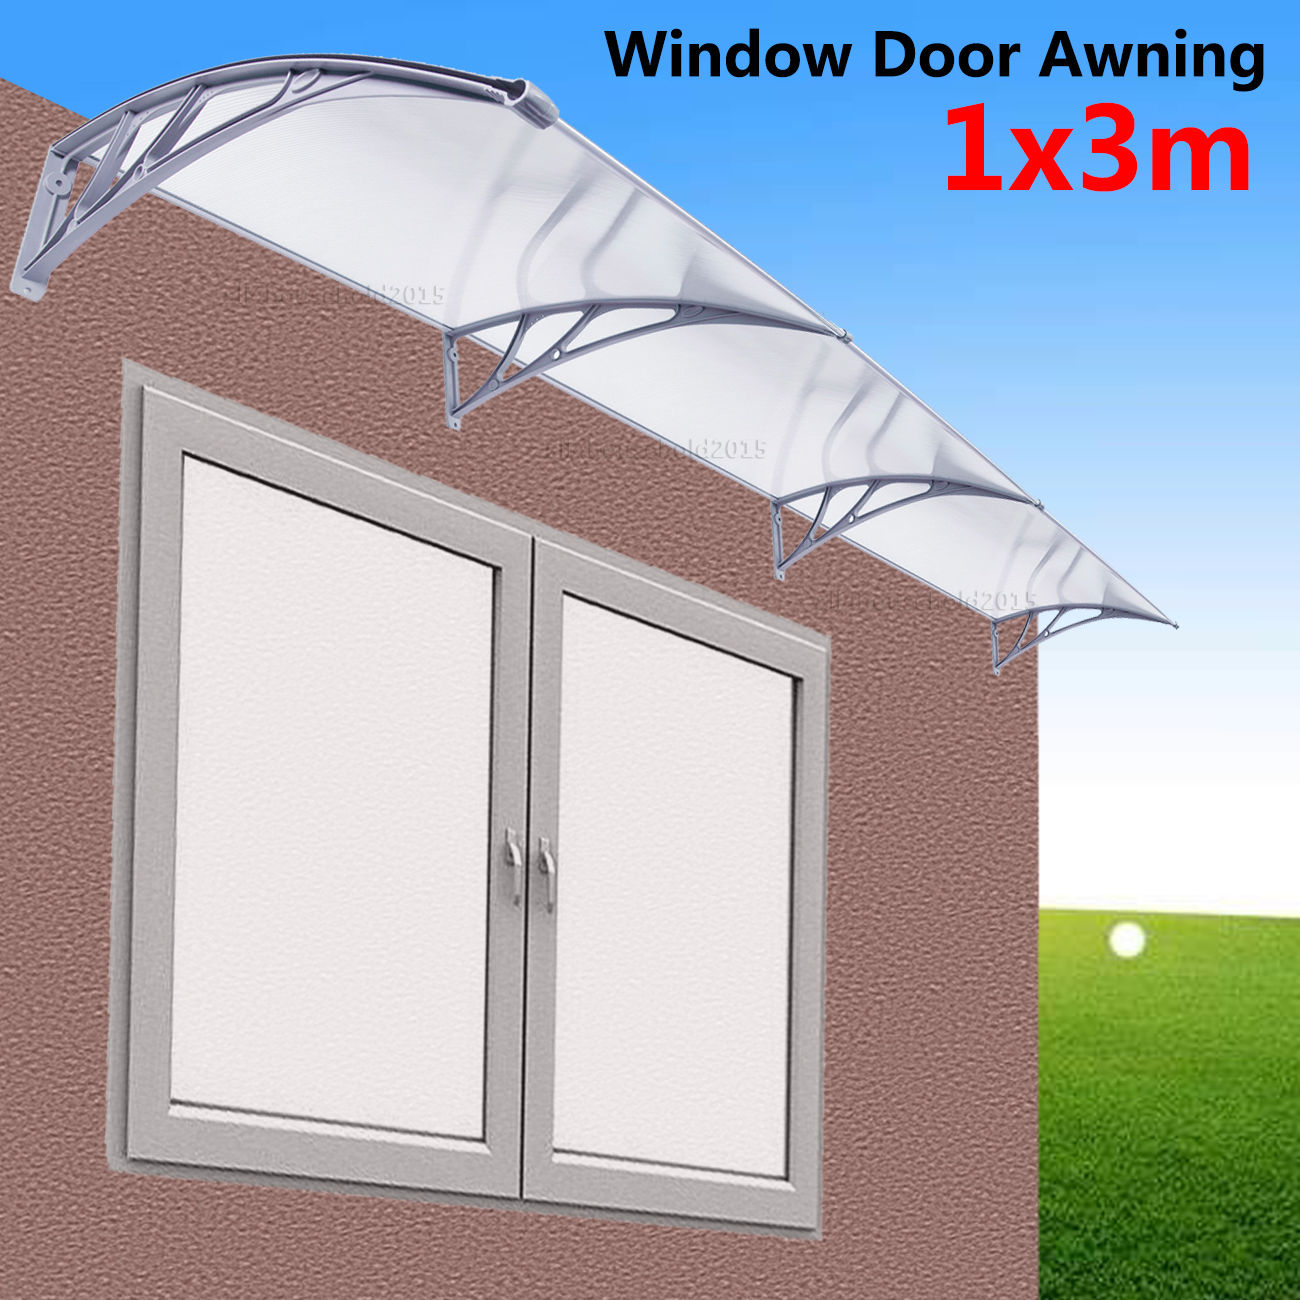 1m x 3m DIY Outdoor Window Patio UV Rain Awning Cover Sun Shield Door Canopy 4pcs set smoke sun rain visor vent window deflector shield guard shade for cadillac xt5 2016 2017